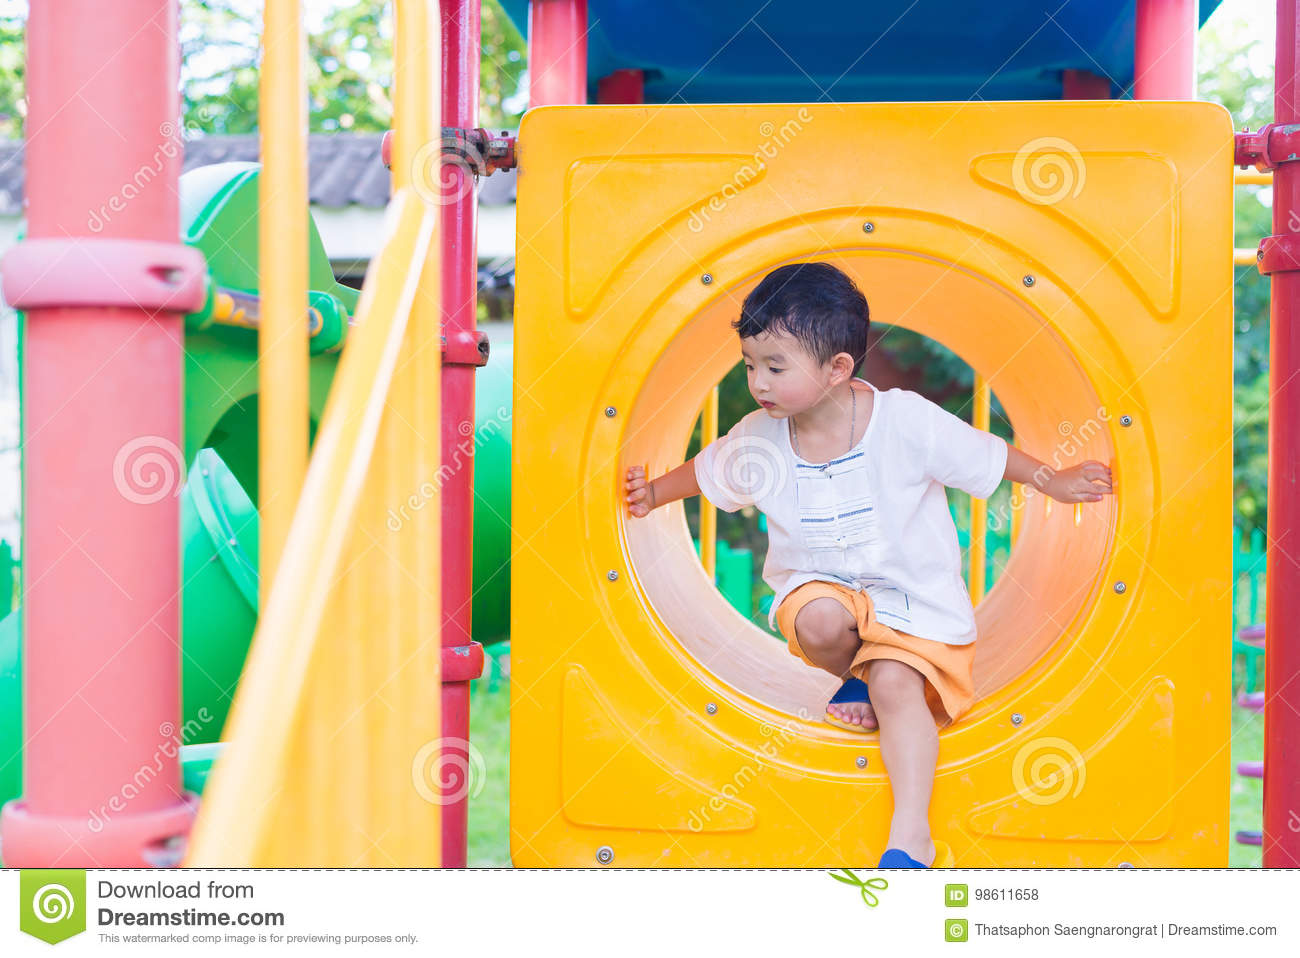 Cute Asian Boy Playing And Smiling In Yellow Tunnel At The Playground With Sunlight In Summer Yellow Tube Shallow Focus